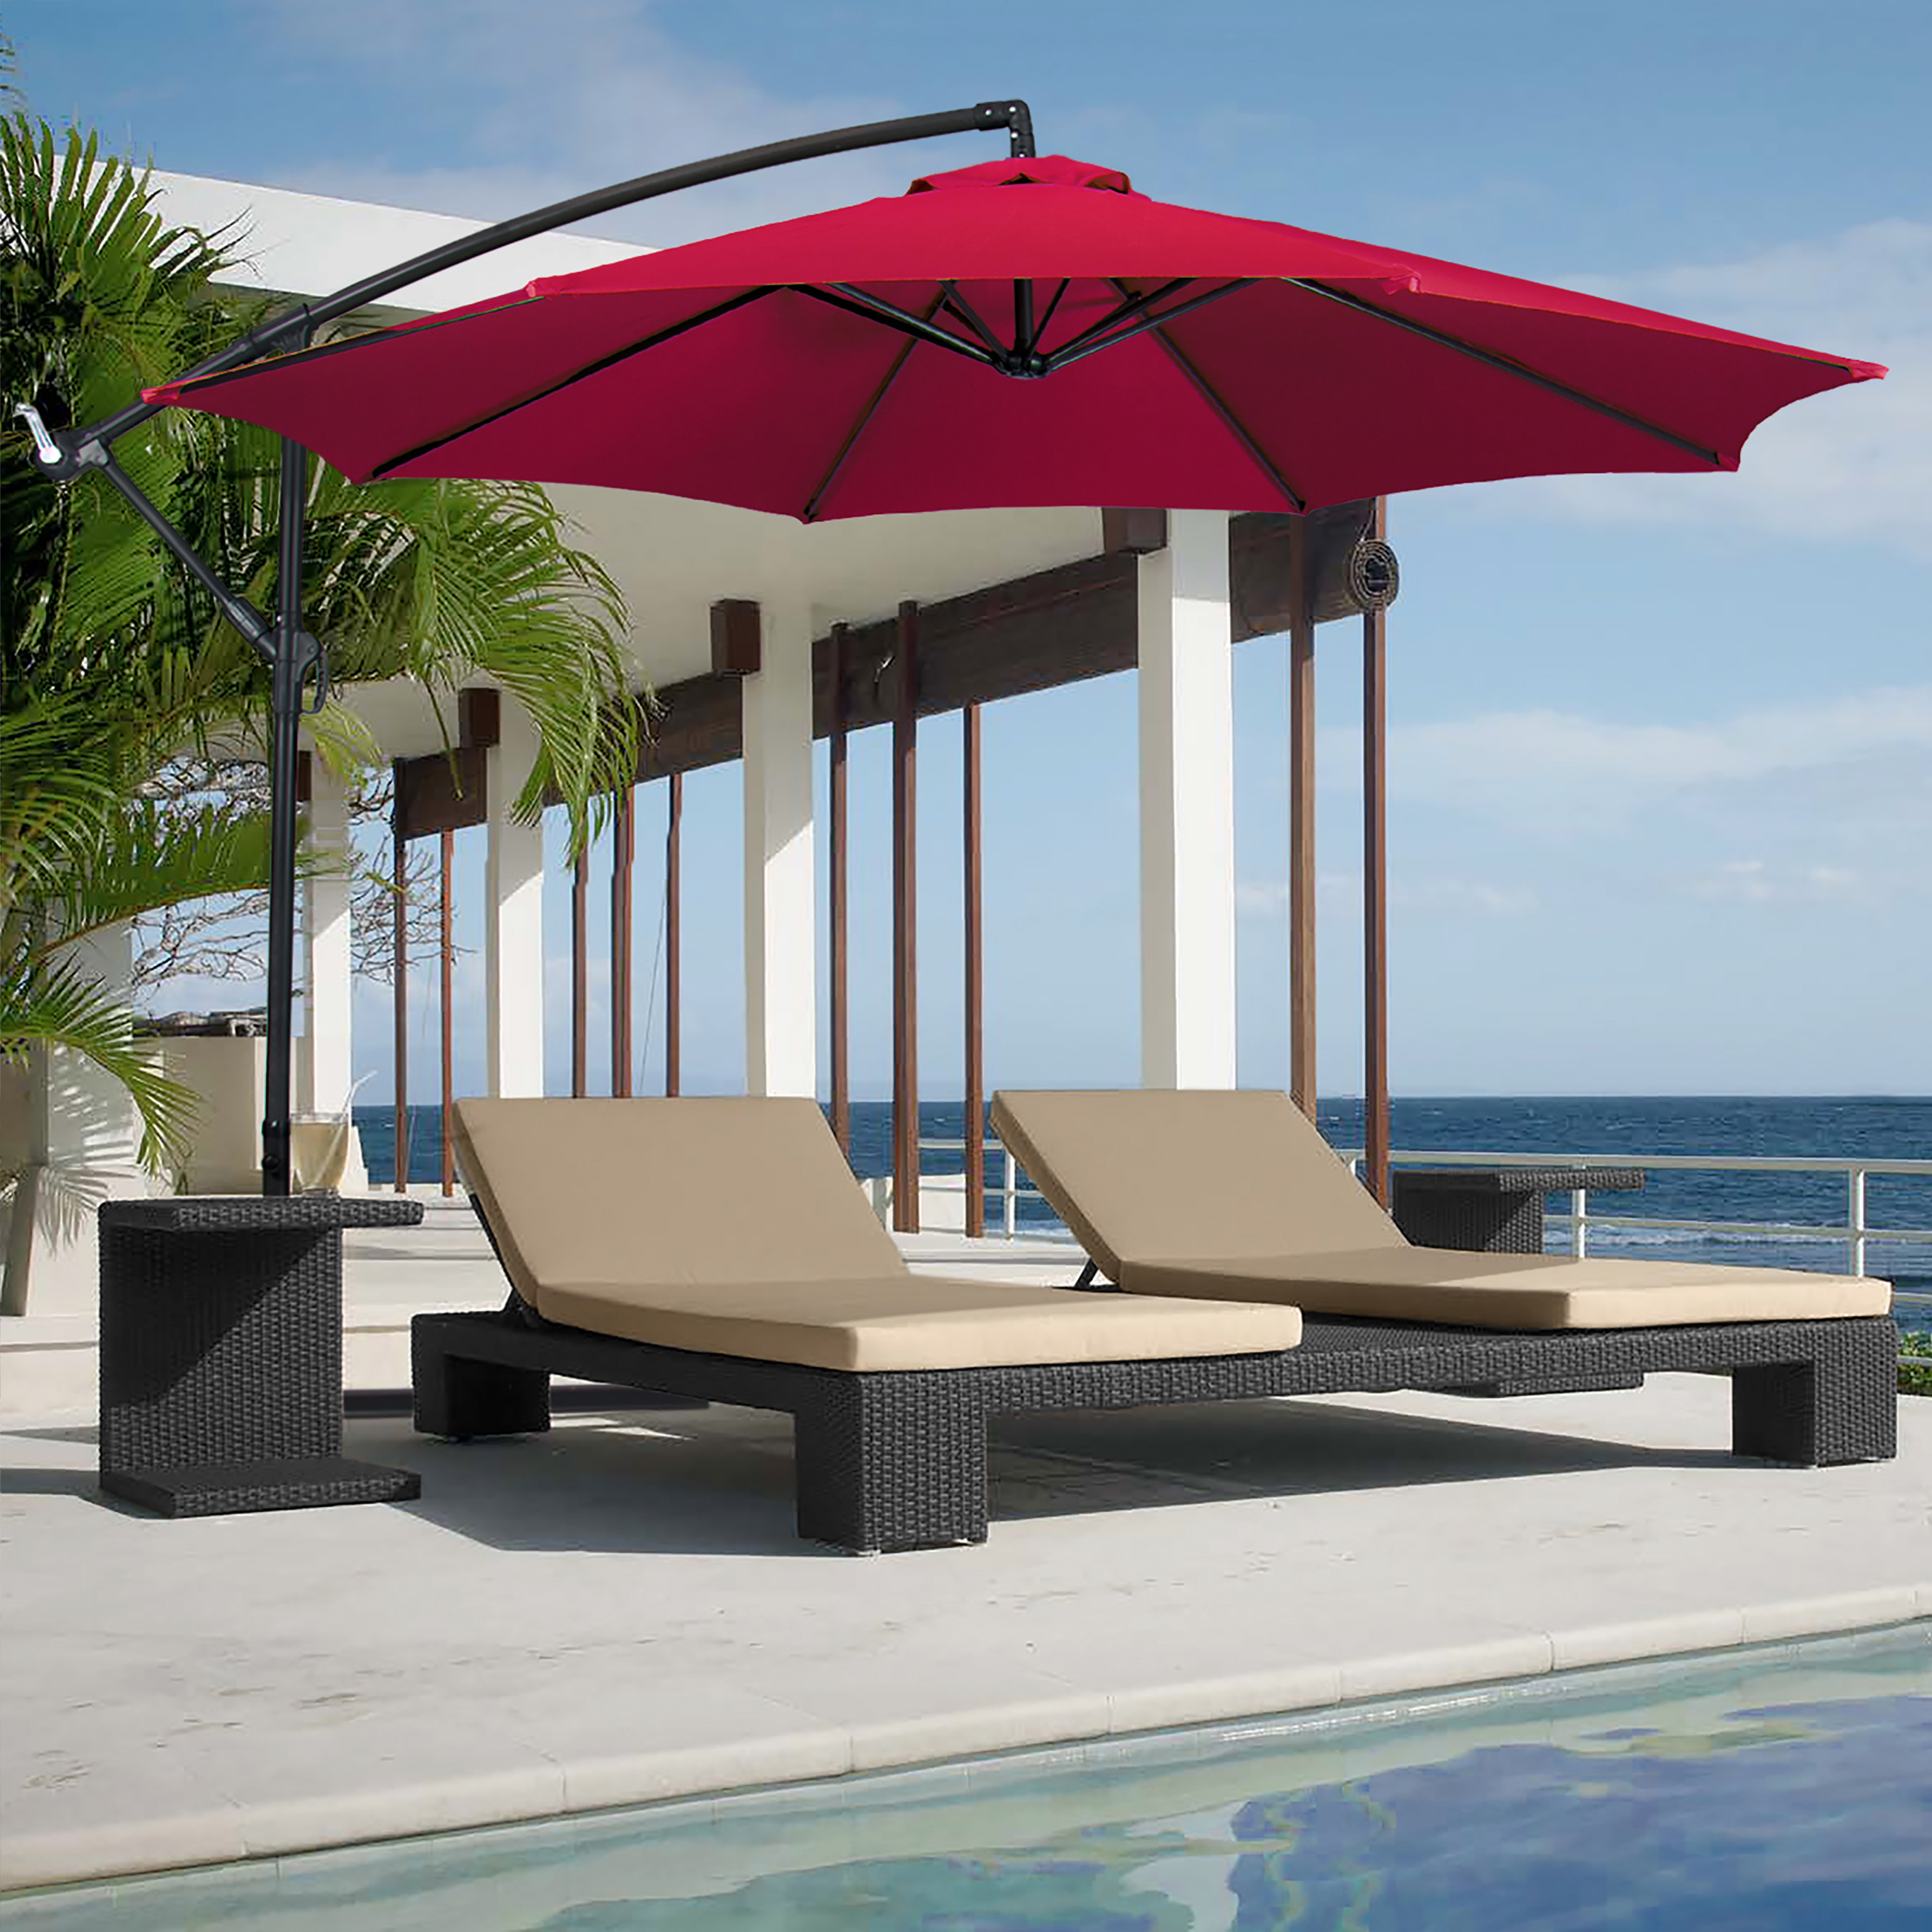 Patio Umbrella Offset 10' Hanging Umbrella Outdoor Market Umbrella New Burgundy by